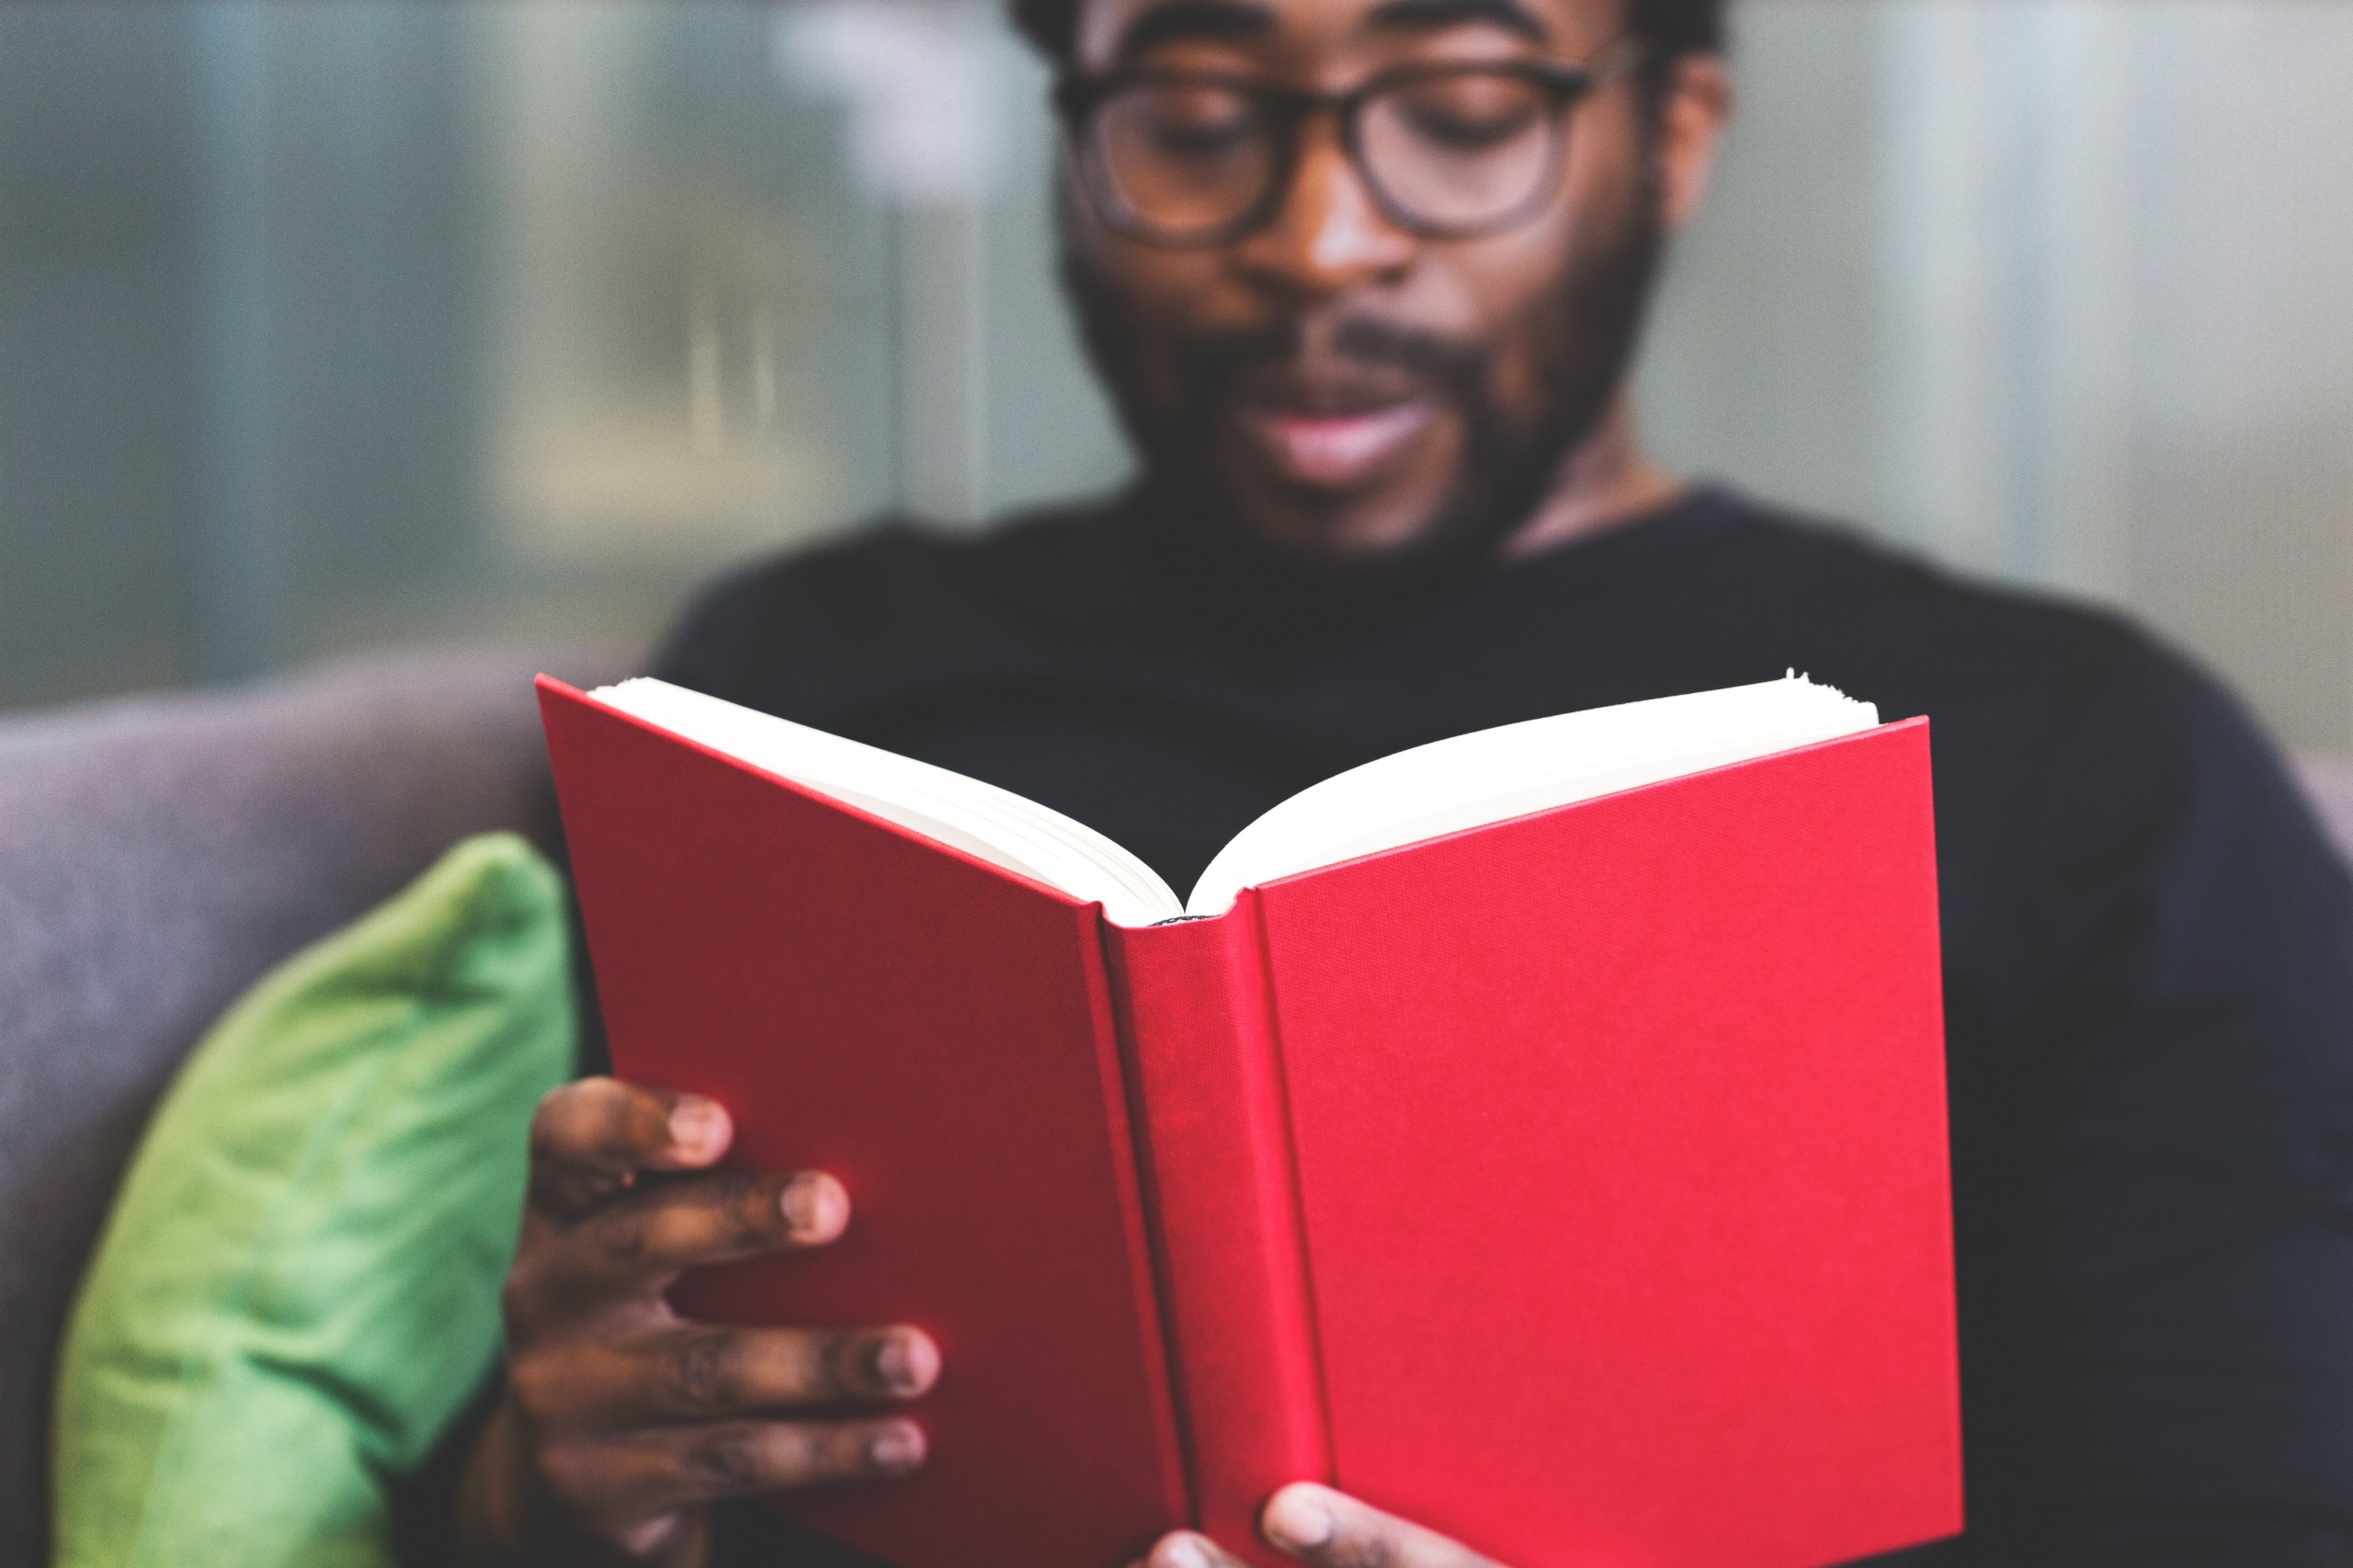 Man with Glasses reading a red hardcover book.